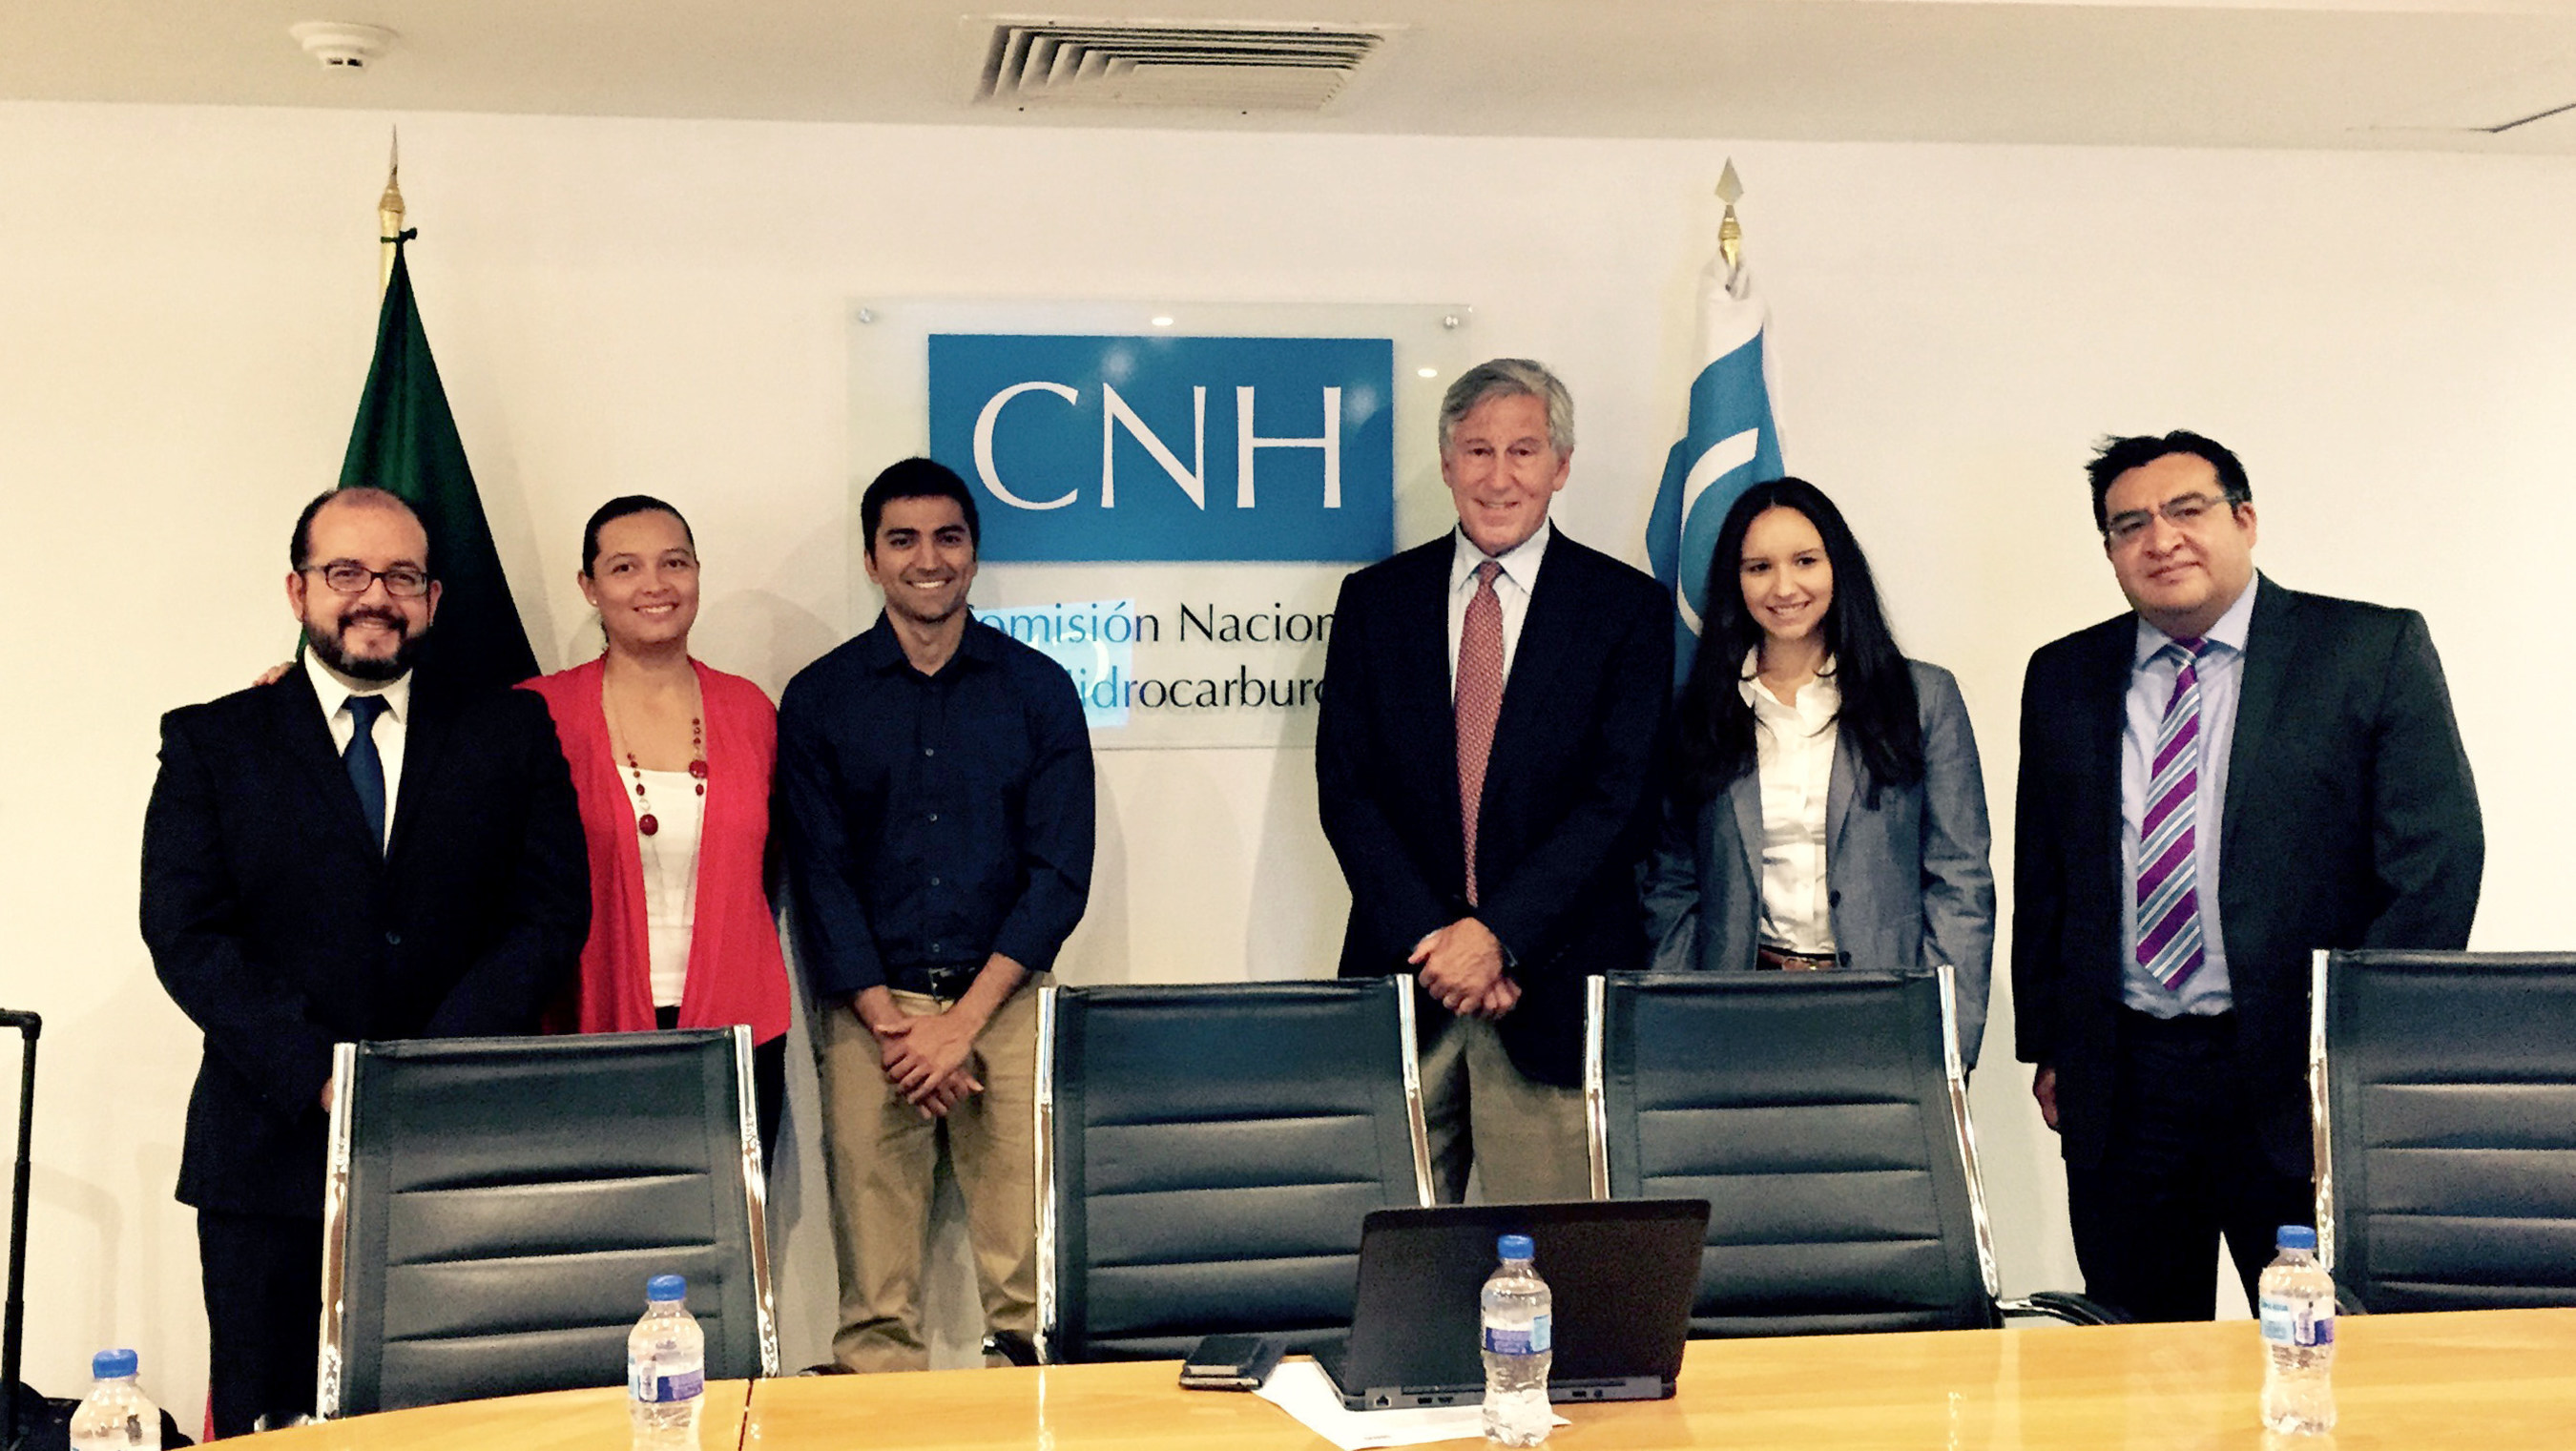 A new partnership between the University of Houston Law Center and Mexico's National Hydrocarbons ...